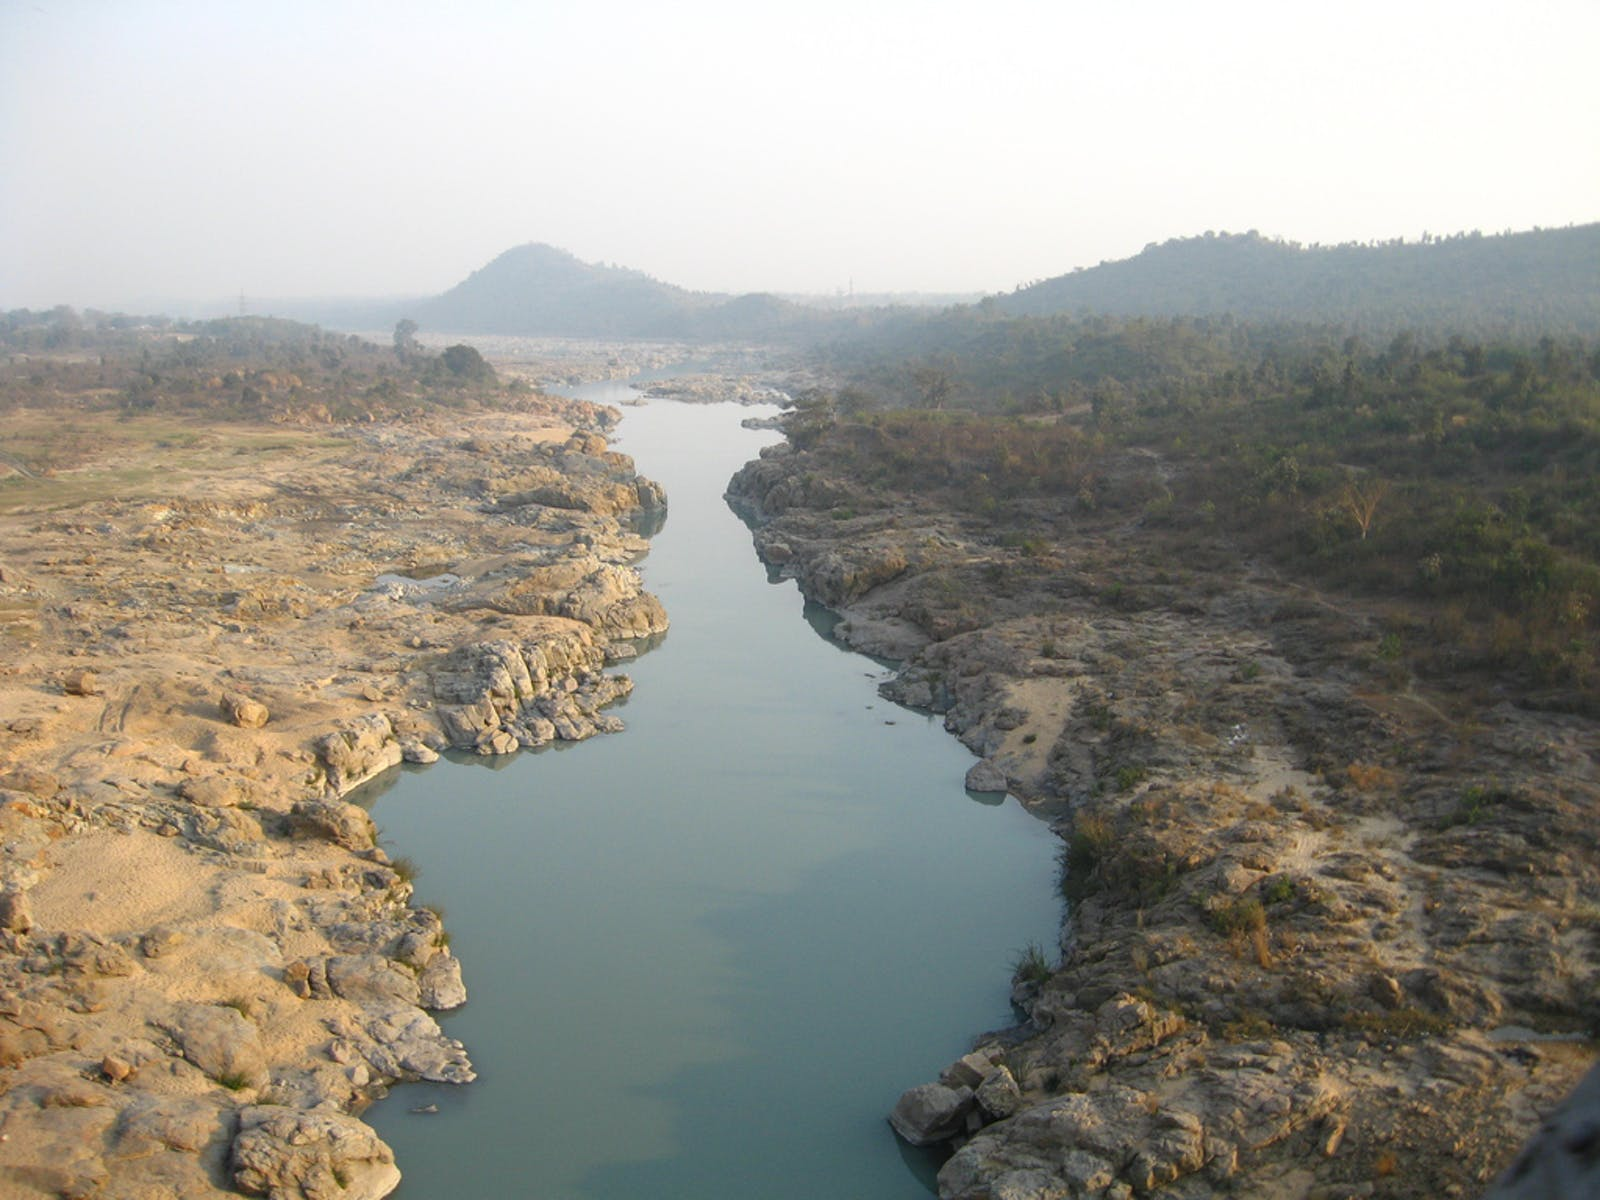 Chhota-Nagpur Dry Deciduous Forests